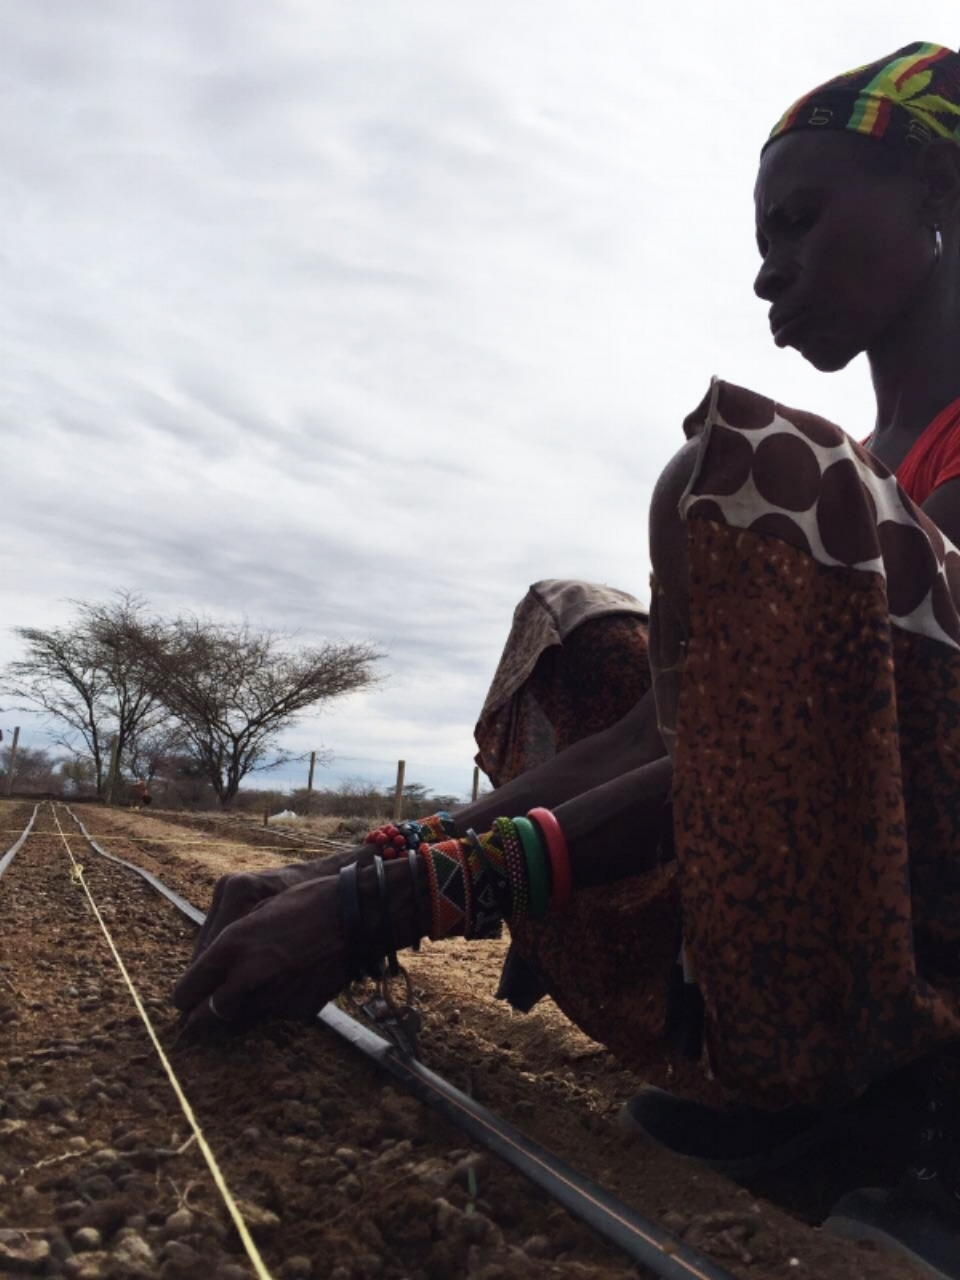 Anna, Turkana woman farmer | Amana Demonstration Farm | Permaculture